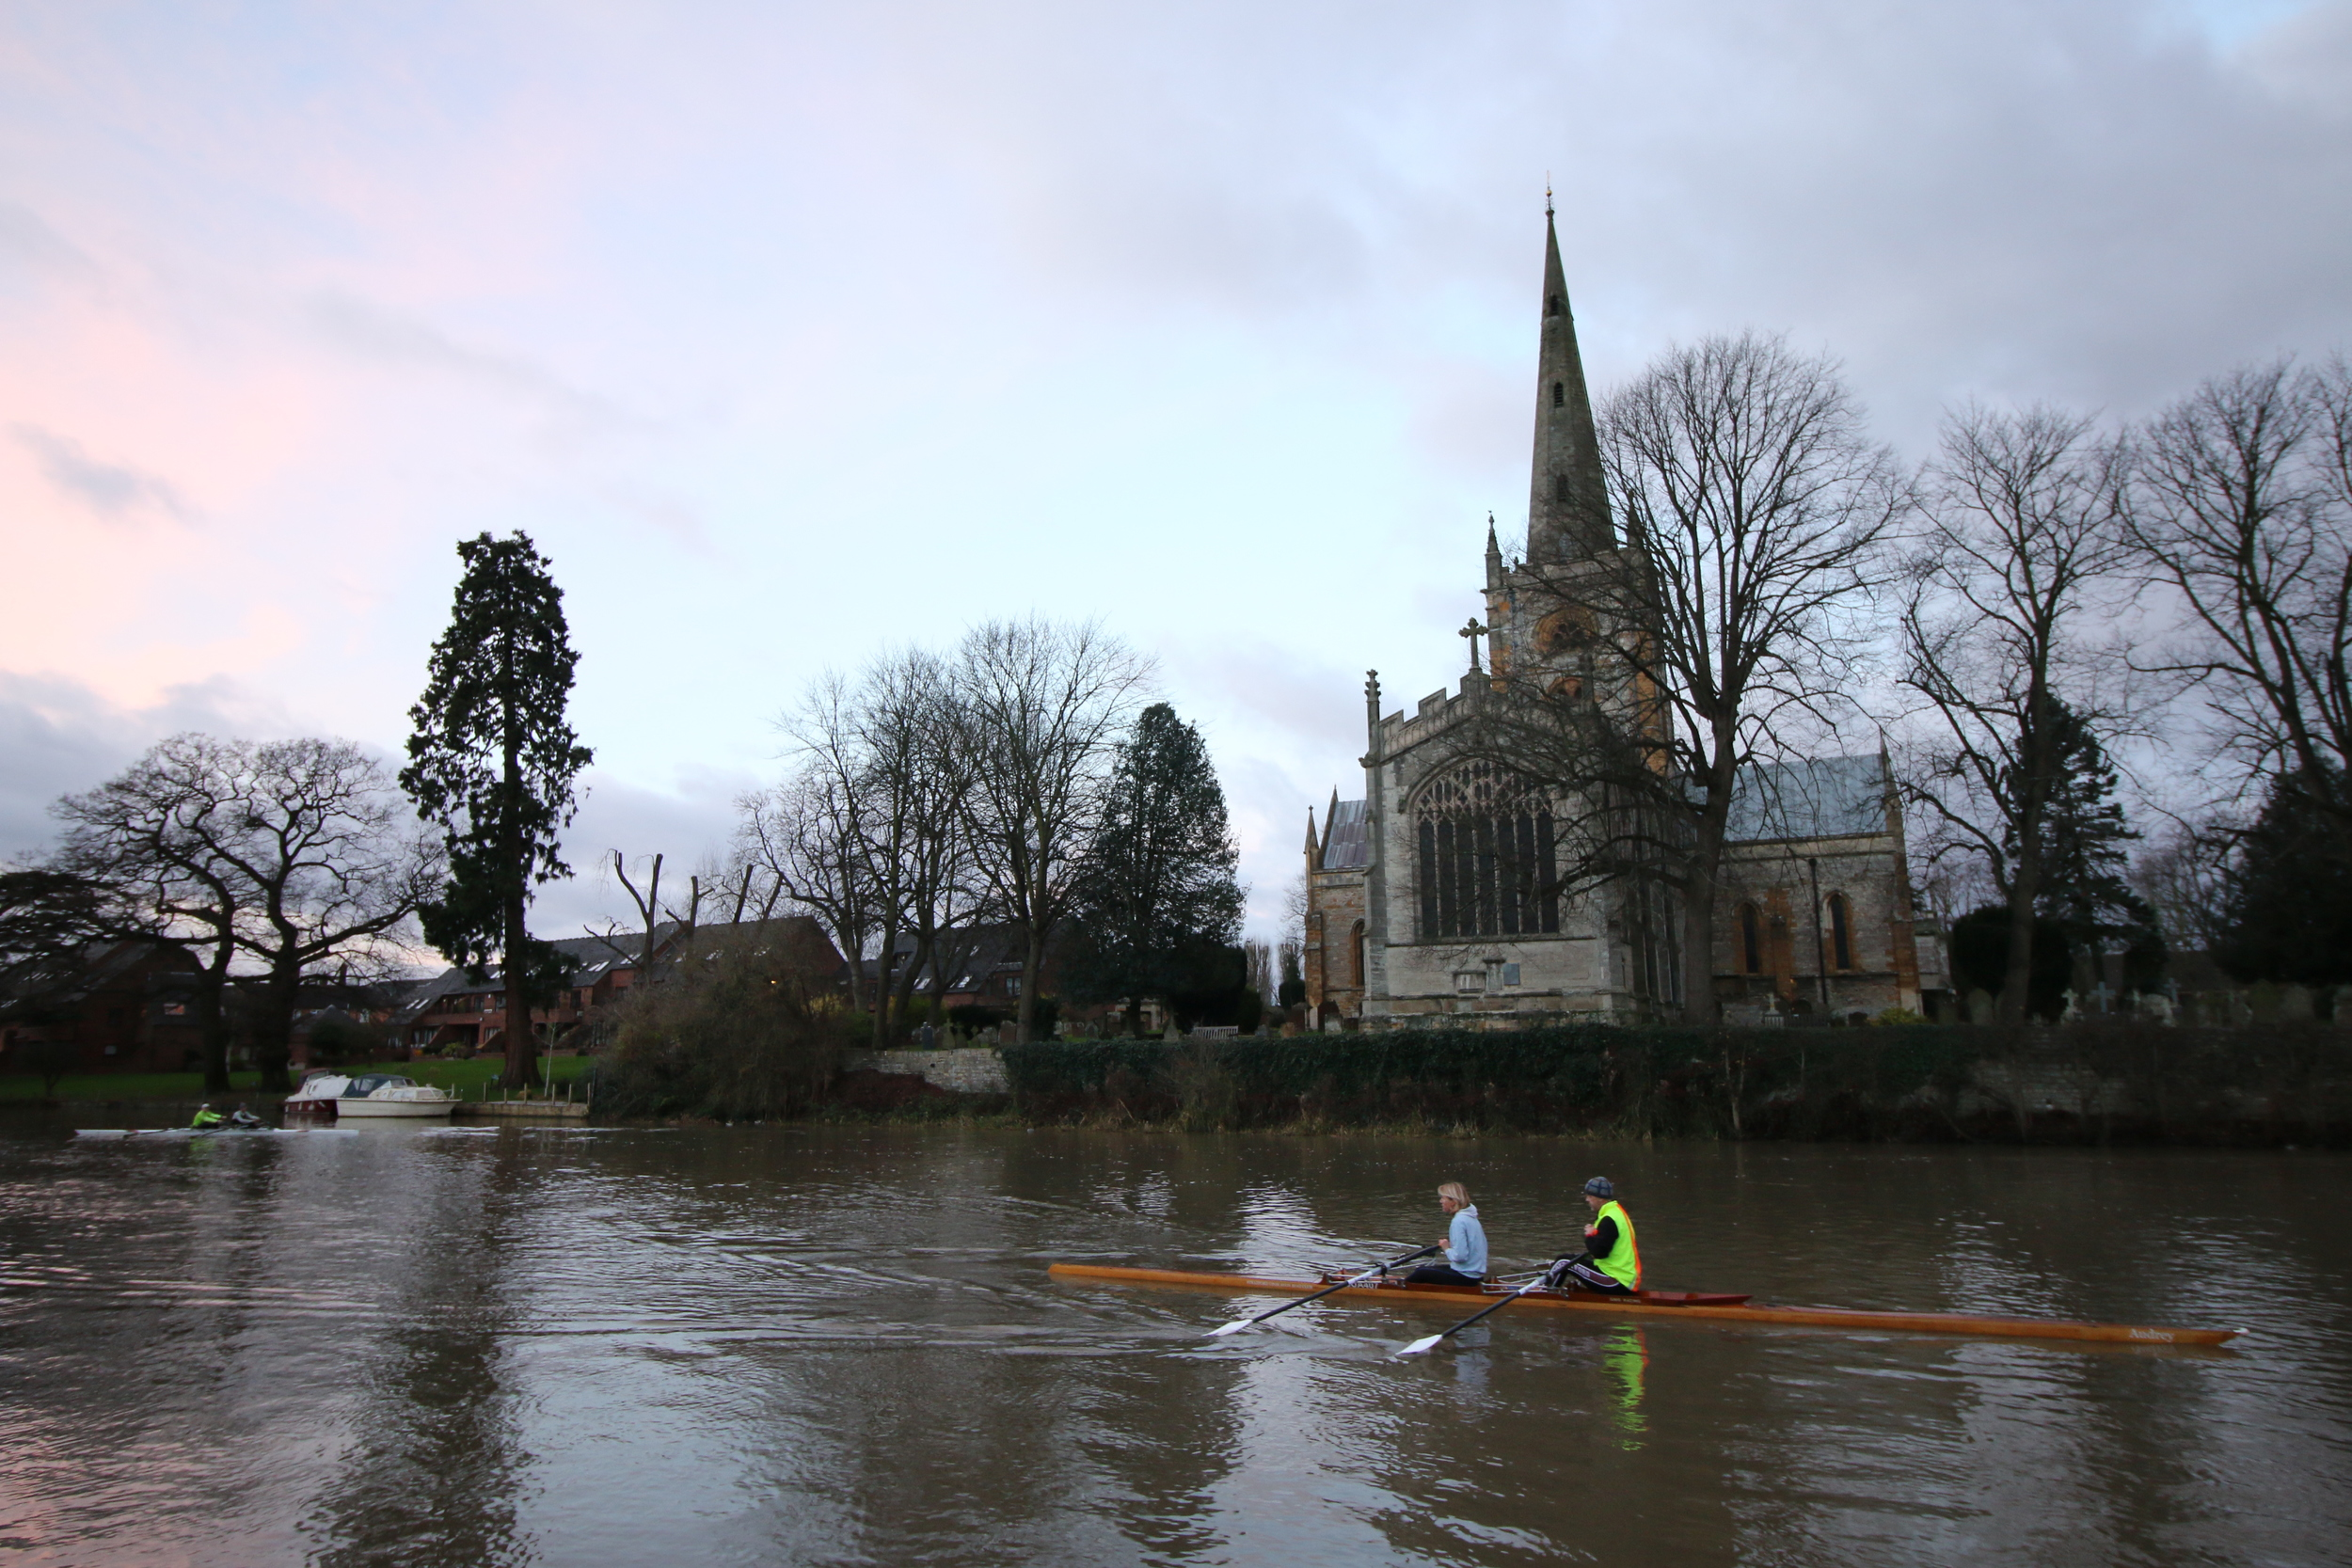 Rowers at dawn, Stratford-upon-Avon: they're a keen bunch.